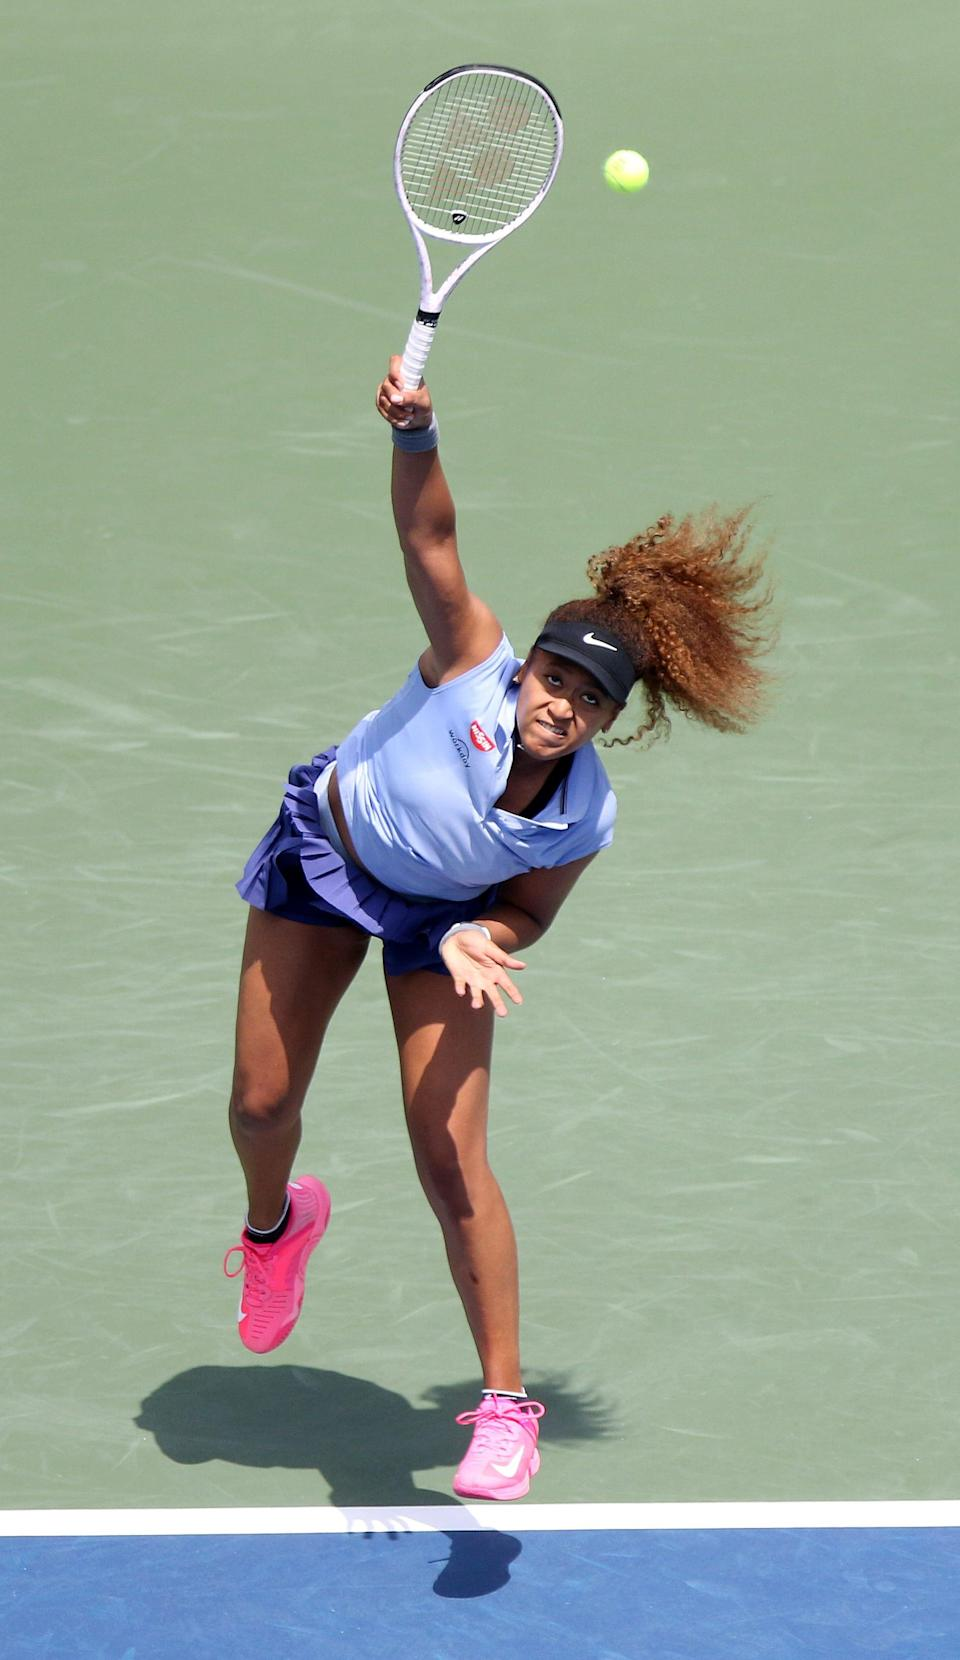 Naomi Osaka defeated Coco Gauff, 6-4, 3-6, 6-4, during the Western & Southern Open at the Lindner Family Tennis Center on Wednesday,